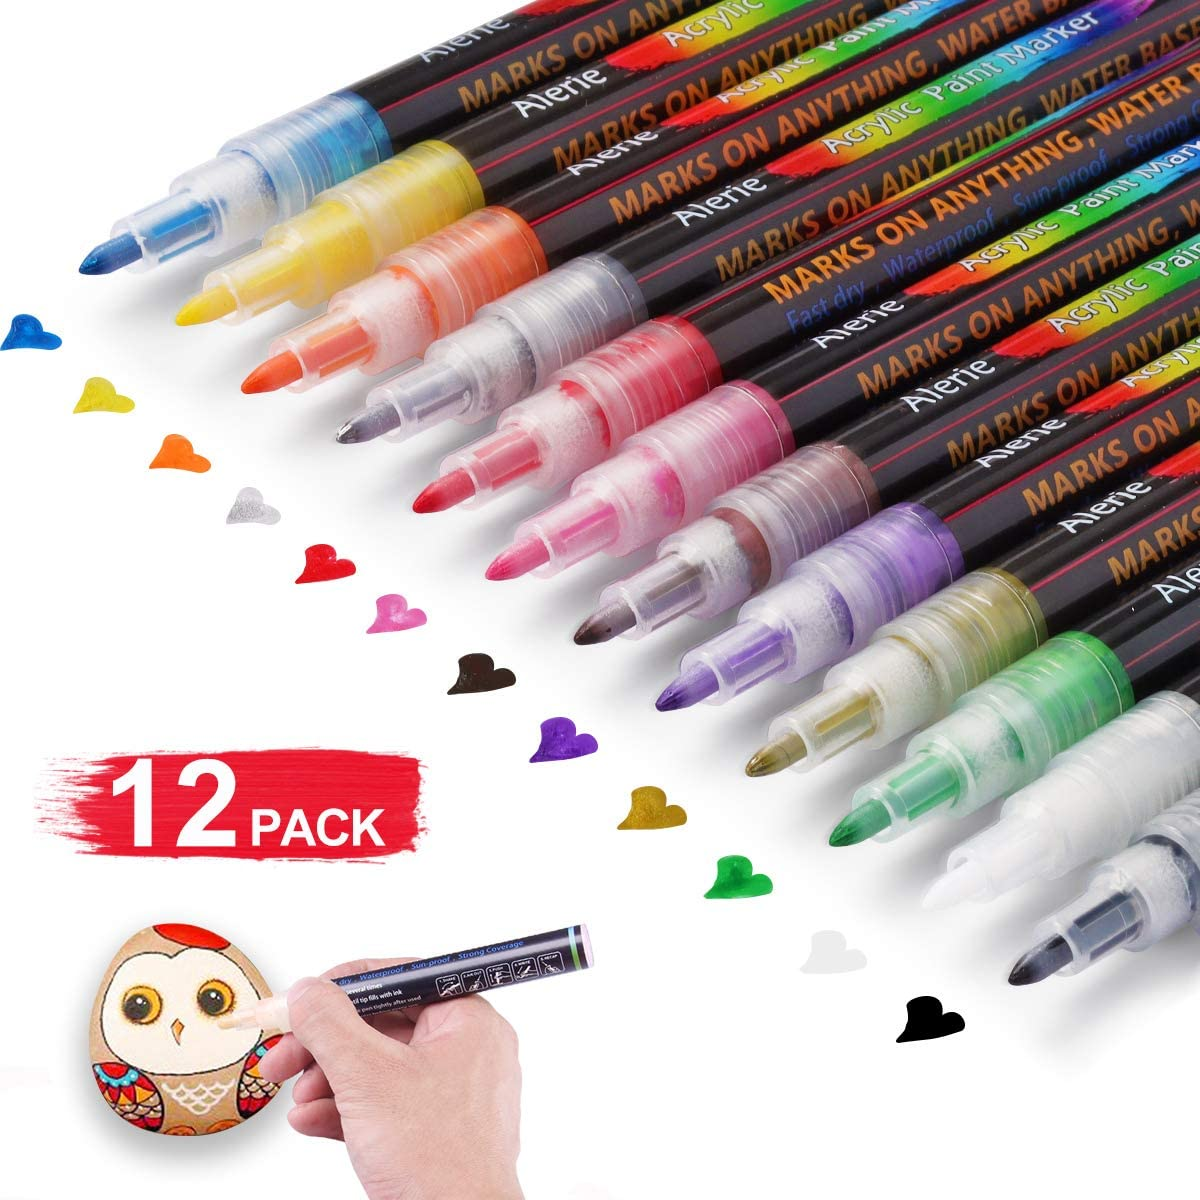 Canvas.Set of 12 Colors Paint Markers with 0.7mm Tip Glass Acrylic Paint Markers for Rock Painting Mugs Fabric Ceramic DIY Craft Making Supplies Wood Acrylic Paint Pens Stone